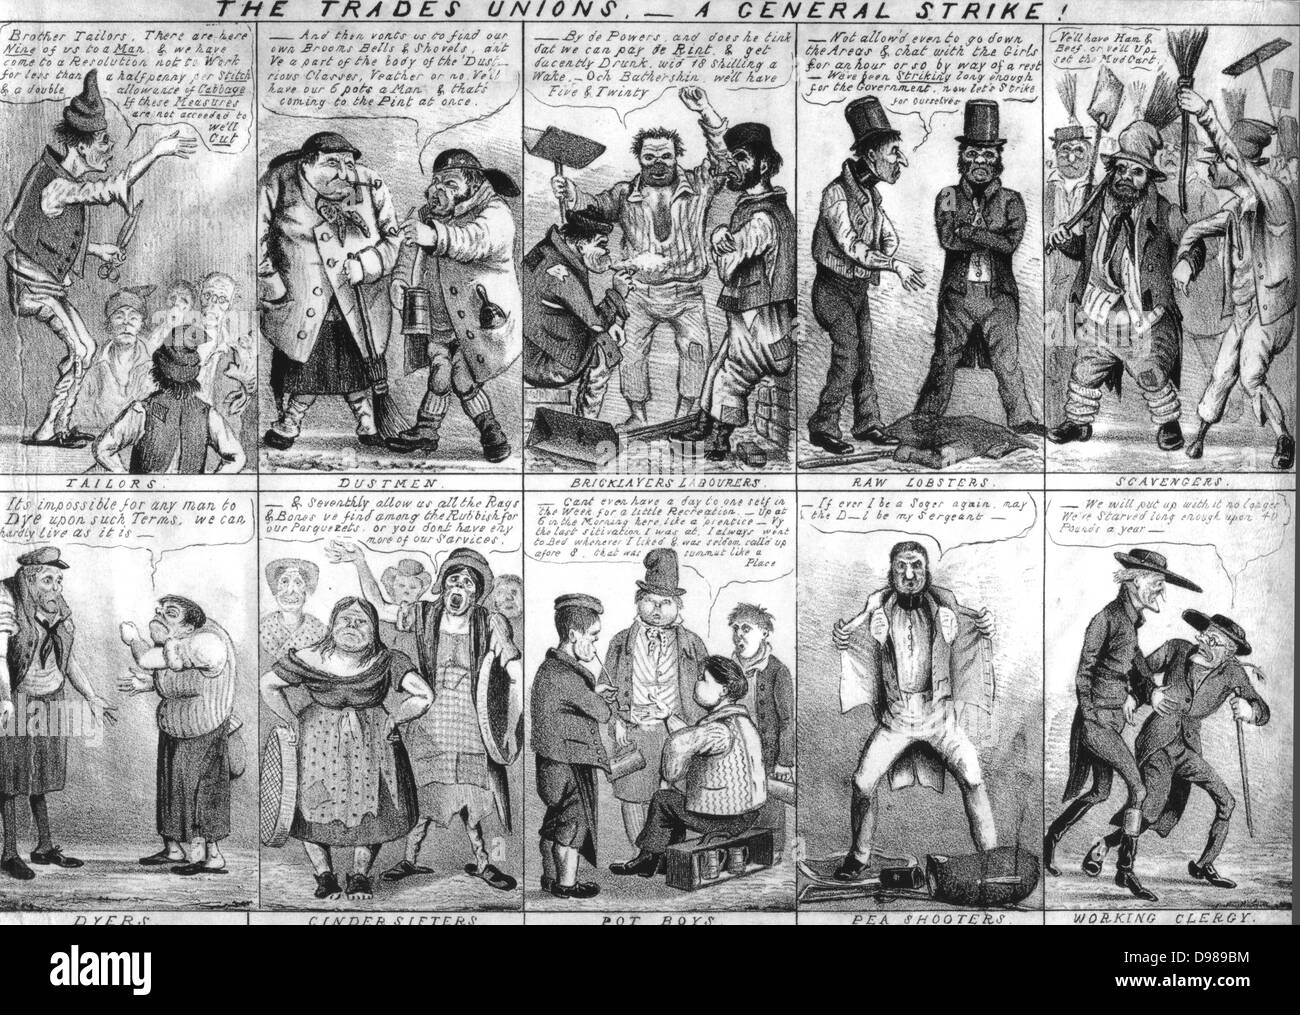 Satirical view of Trade Unions and their demands from tailors and bricklayers to police and clergy. Lithograph 1830s. - Stock Image